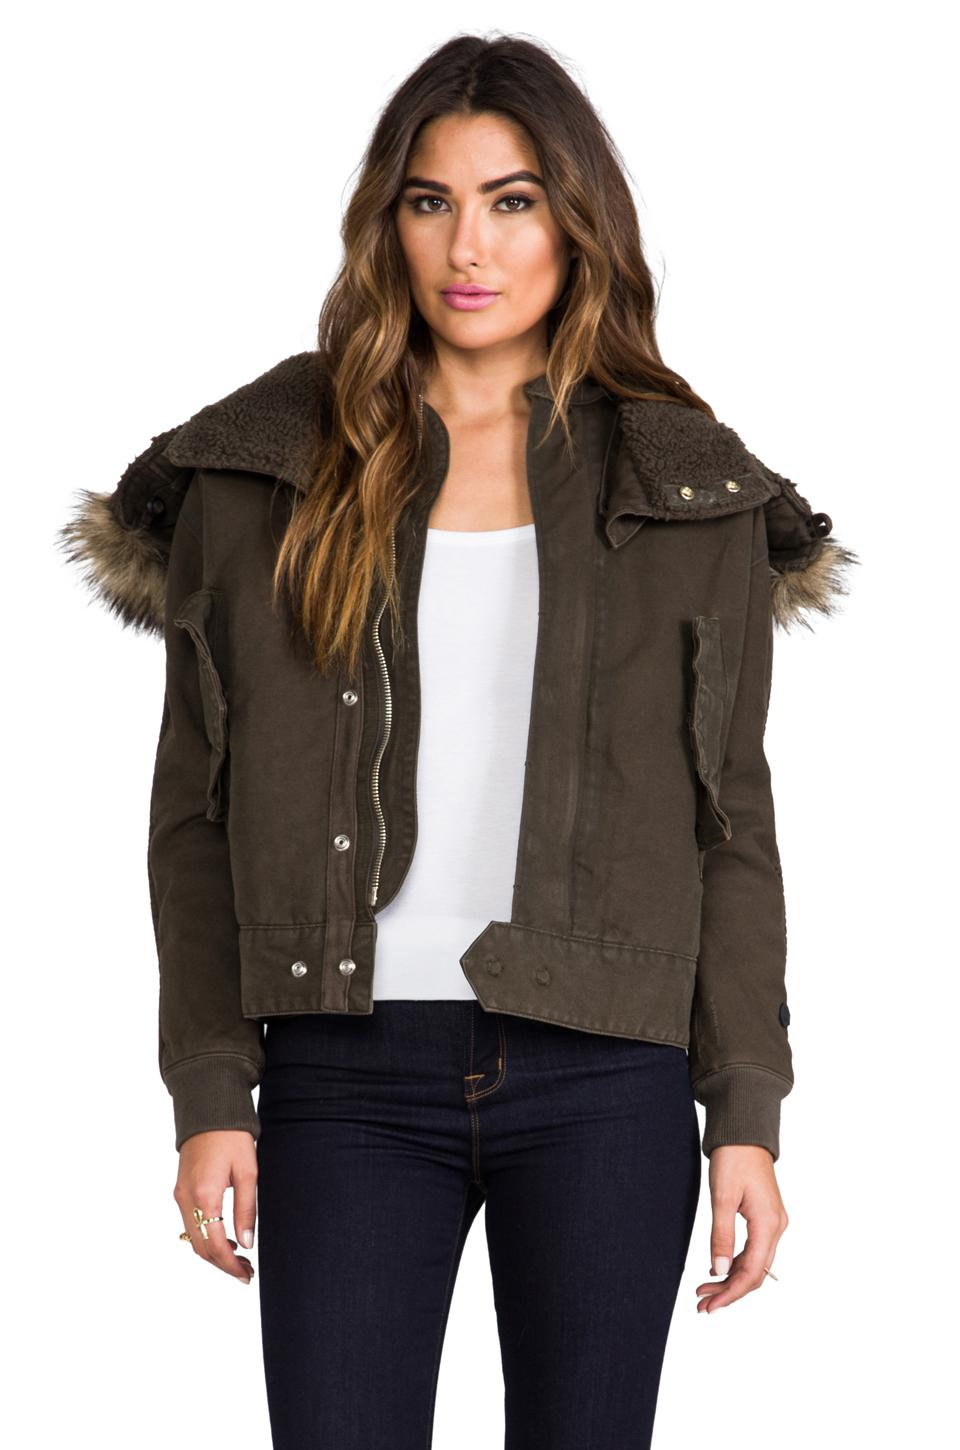 The jacket first appeared only upon her departure -- by the time Trump arrived in McAllen, Texas, the olive drab jacket, a $39 Zara design, was gone, and she walked into the housing facility clad.